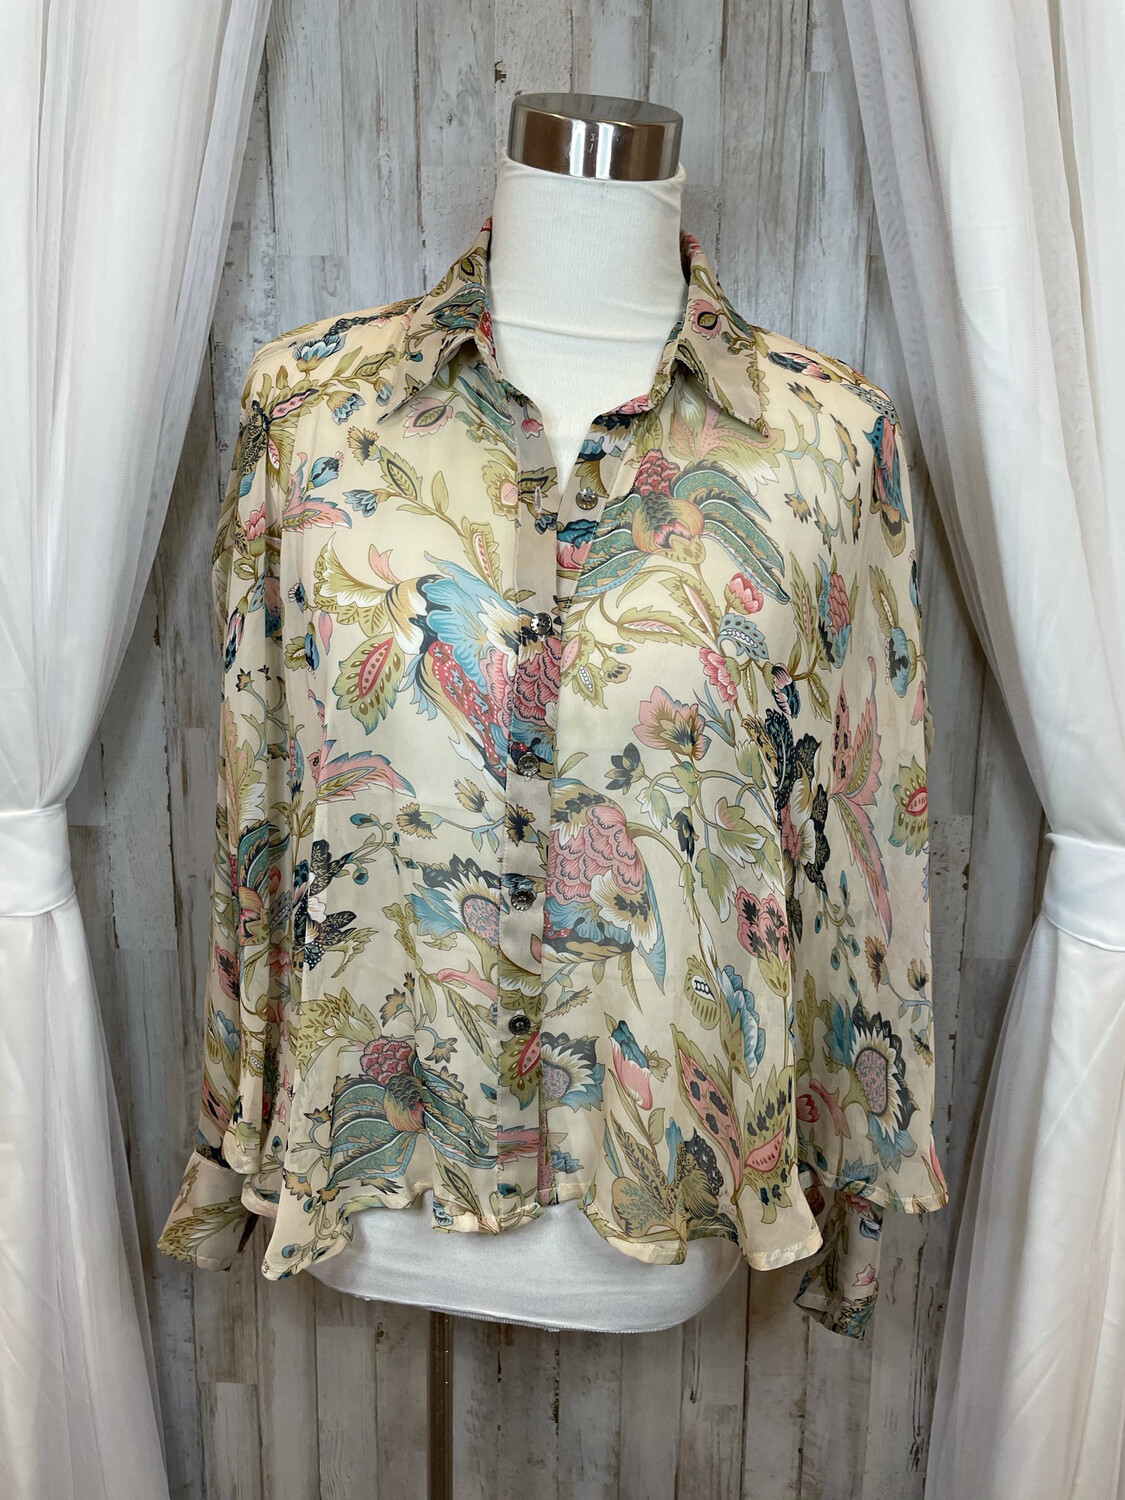 Cecico Floral Sheer Button Up Top - M